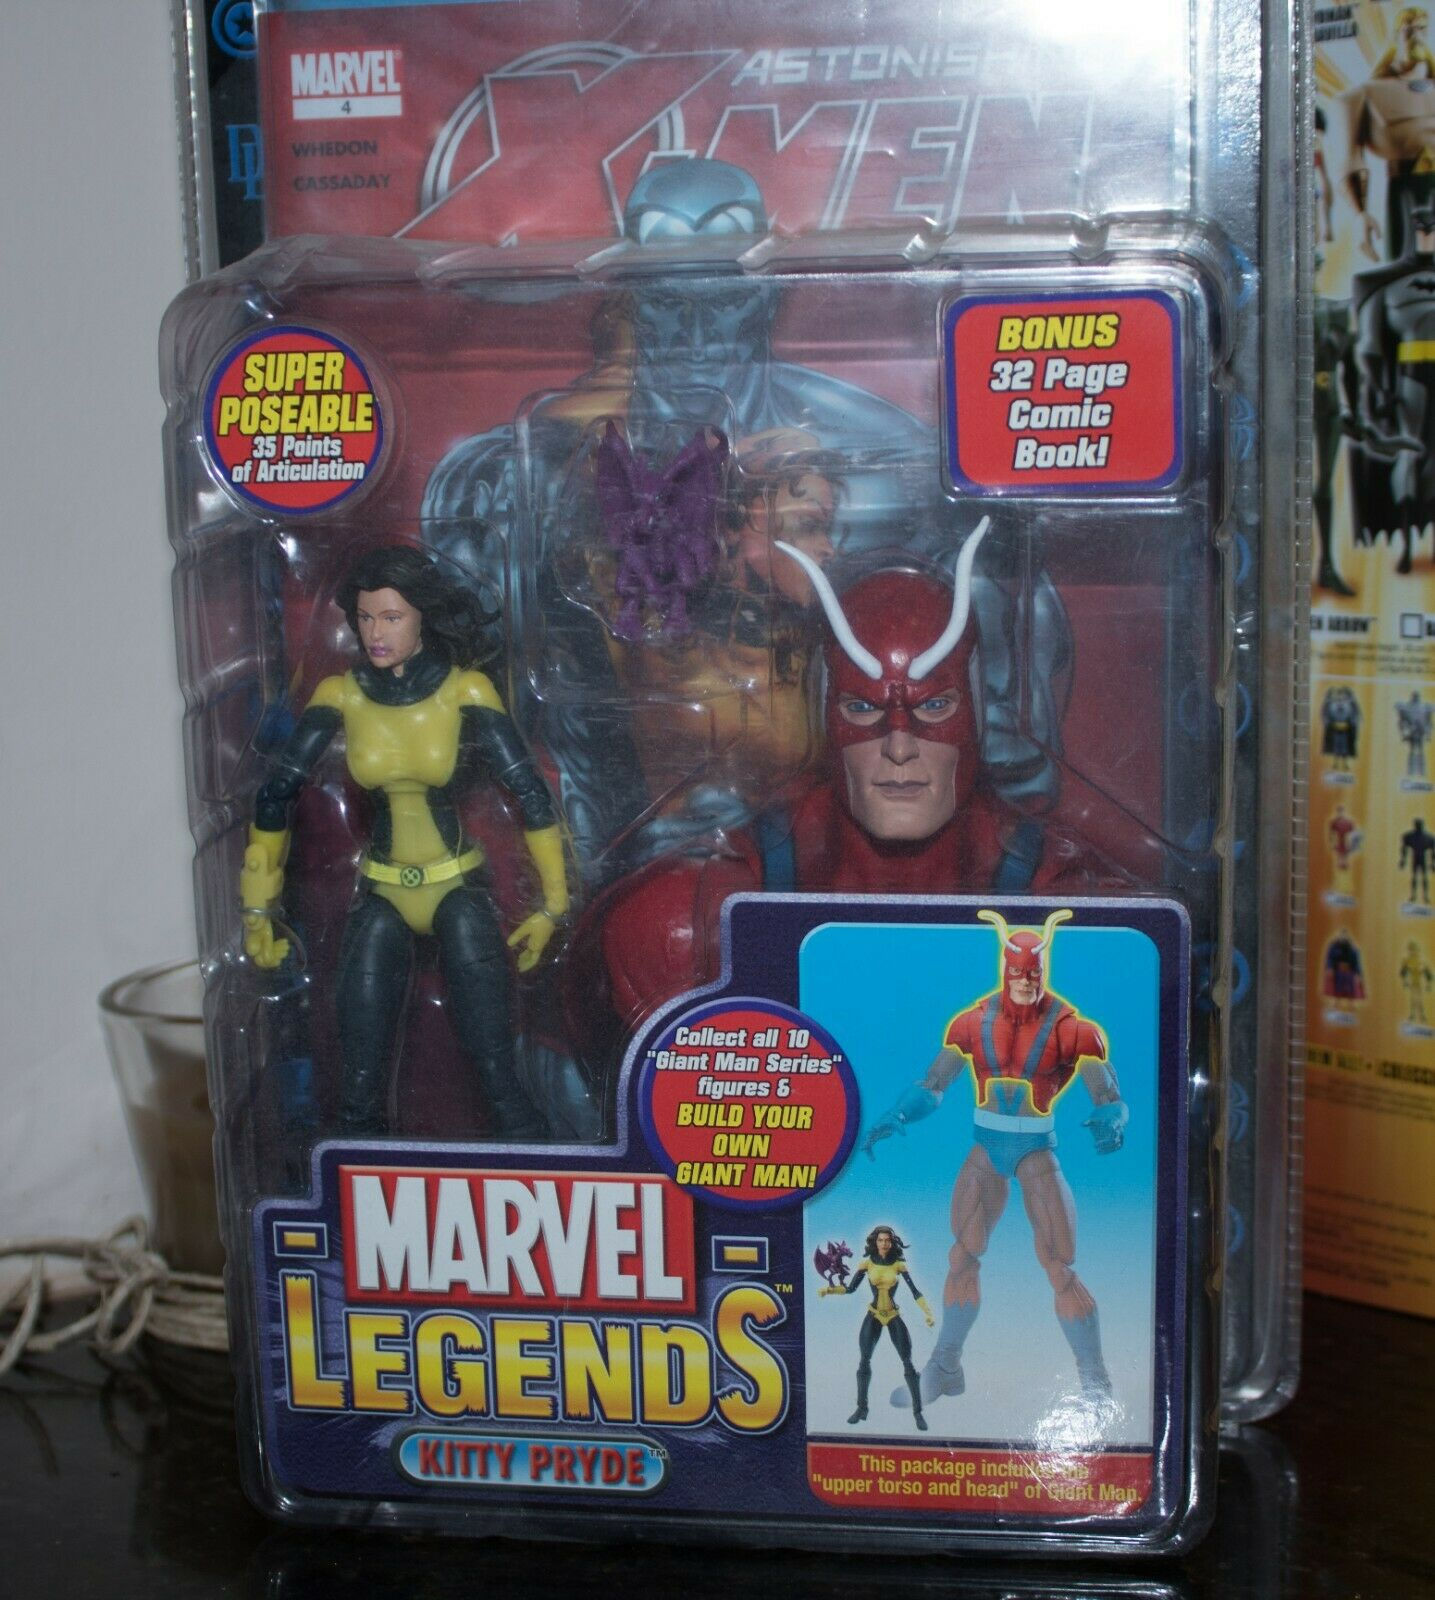 Marvel Legends Giant Giant Giant Man Series Kitty Pryde 14060f